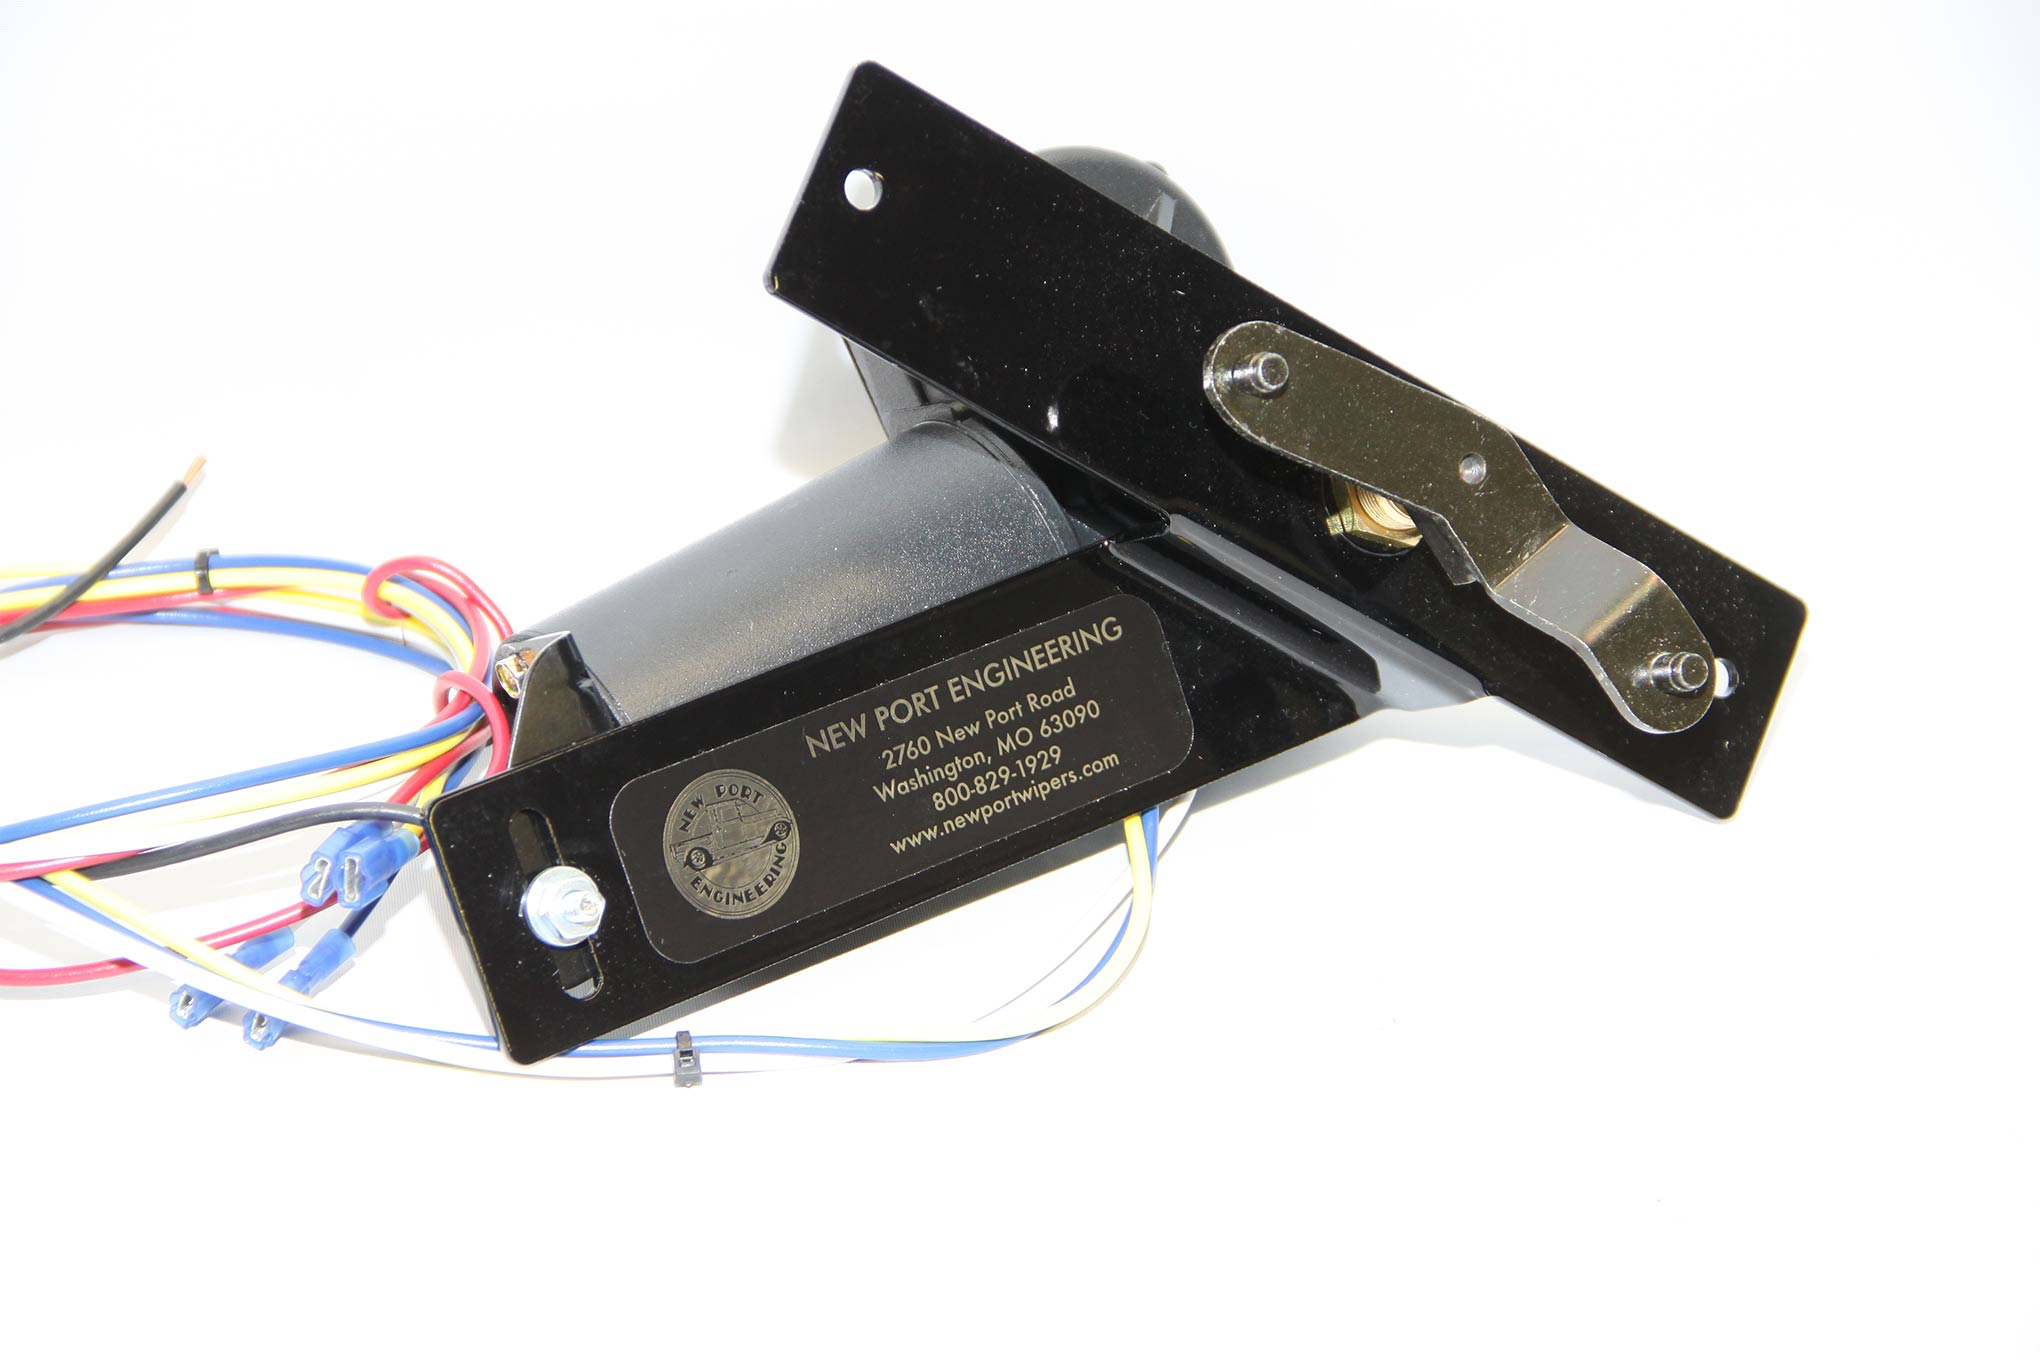 New Port Engineering offers electric windshield wiper conversions for a variety of cars and trucks. This example is for 1959 Ford cars.